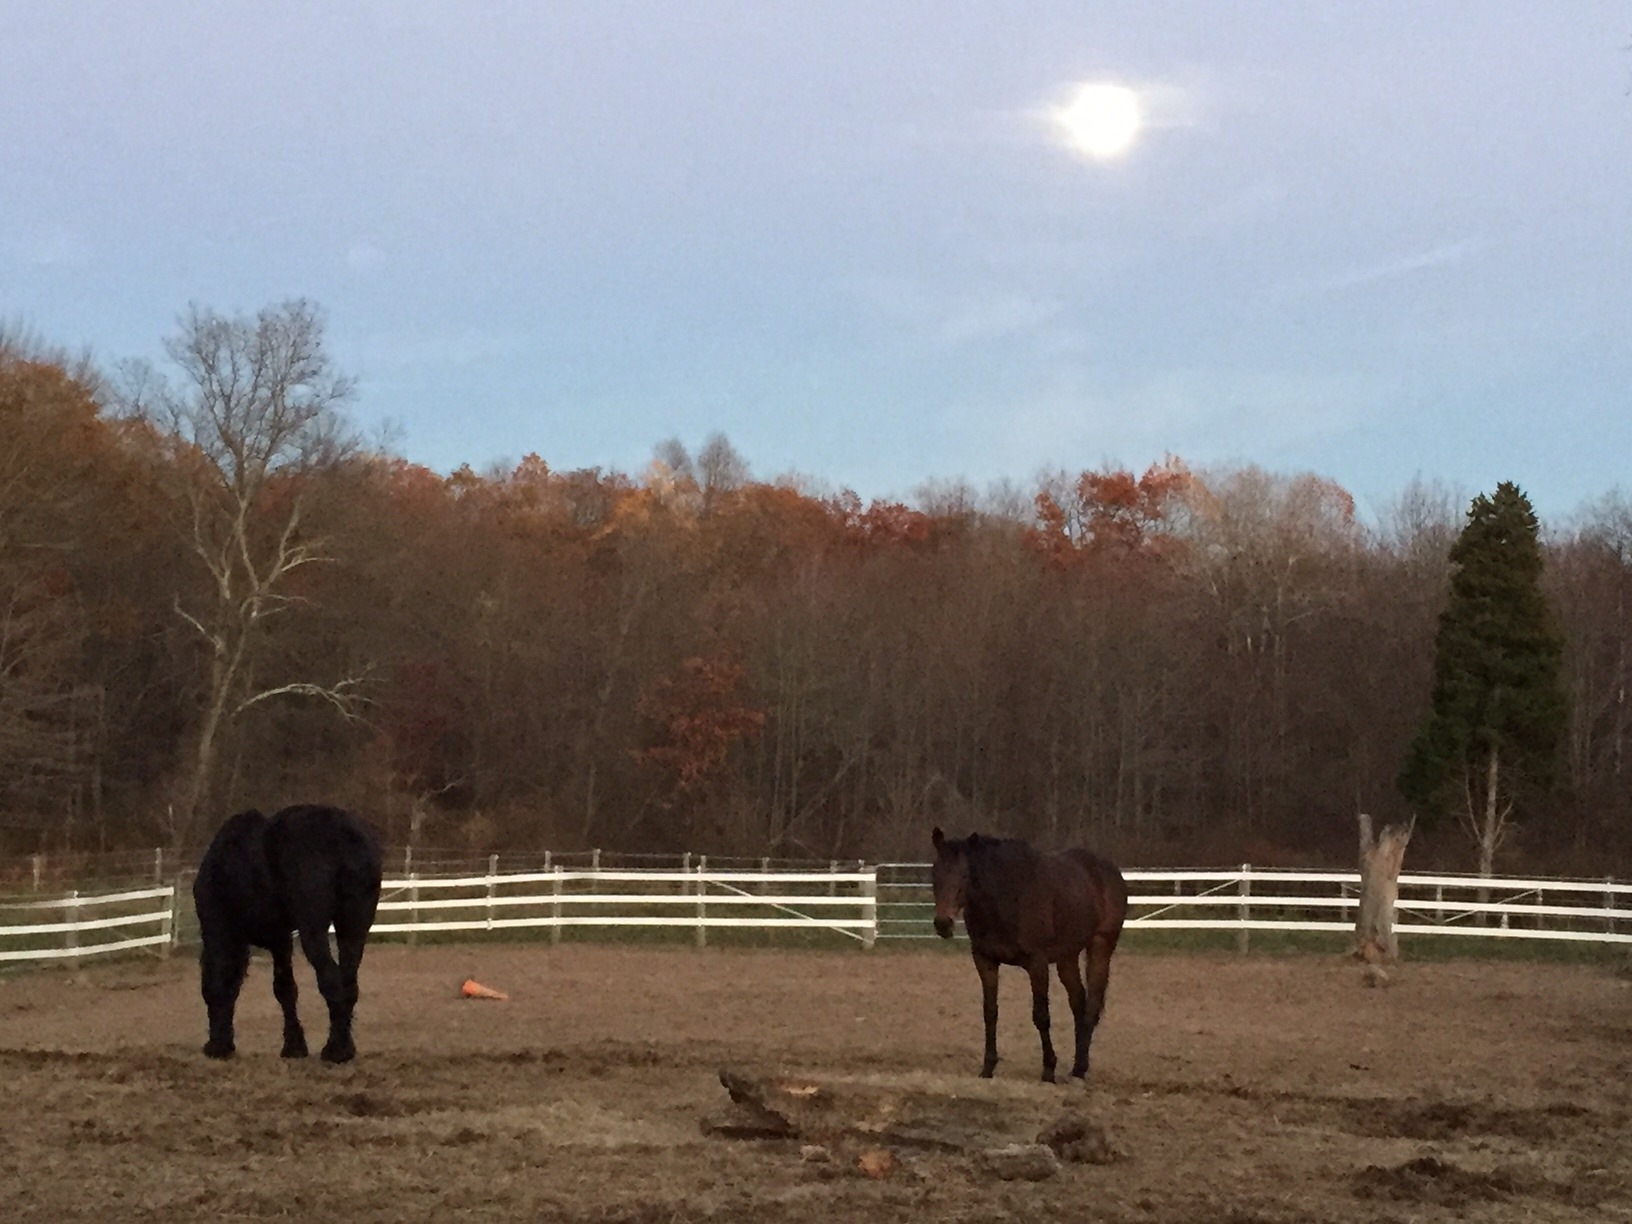 Horses grazing under the super moon